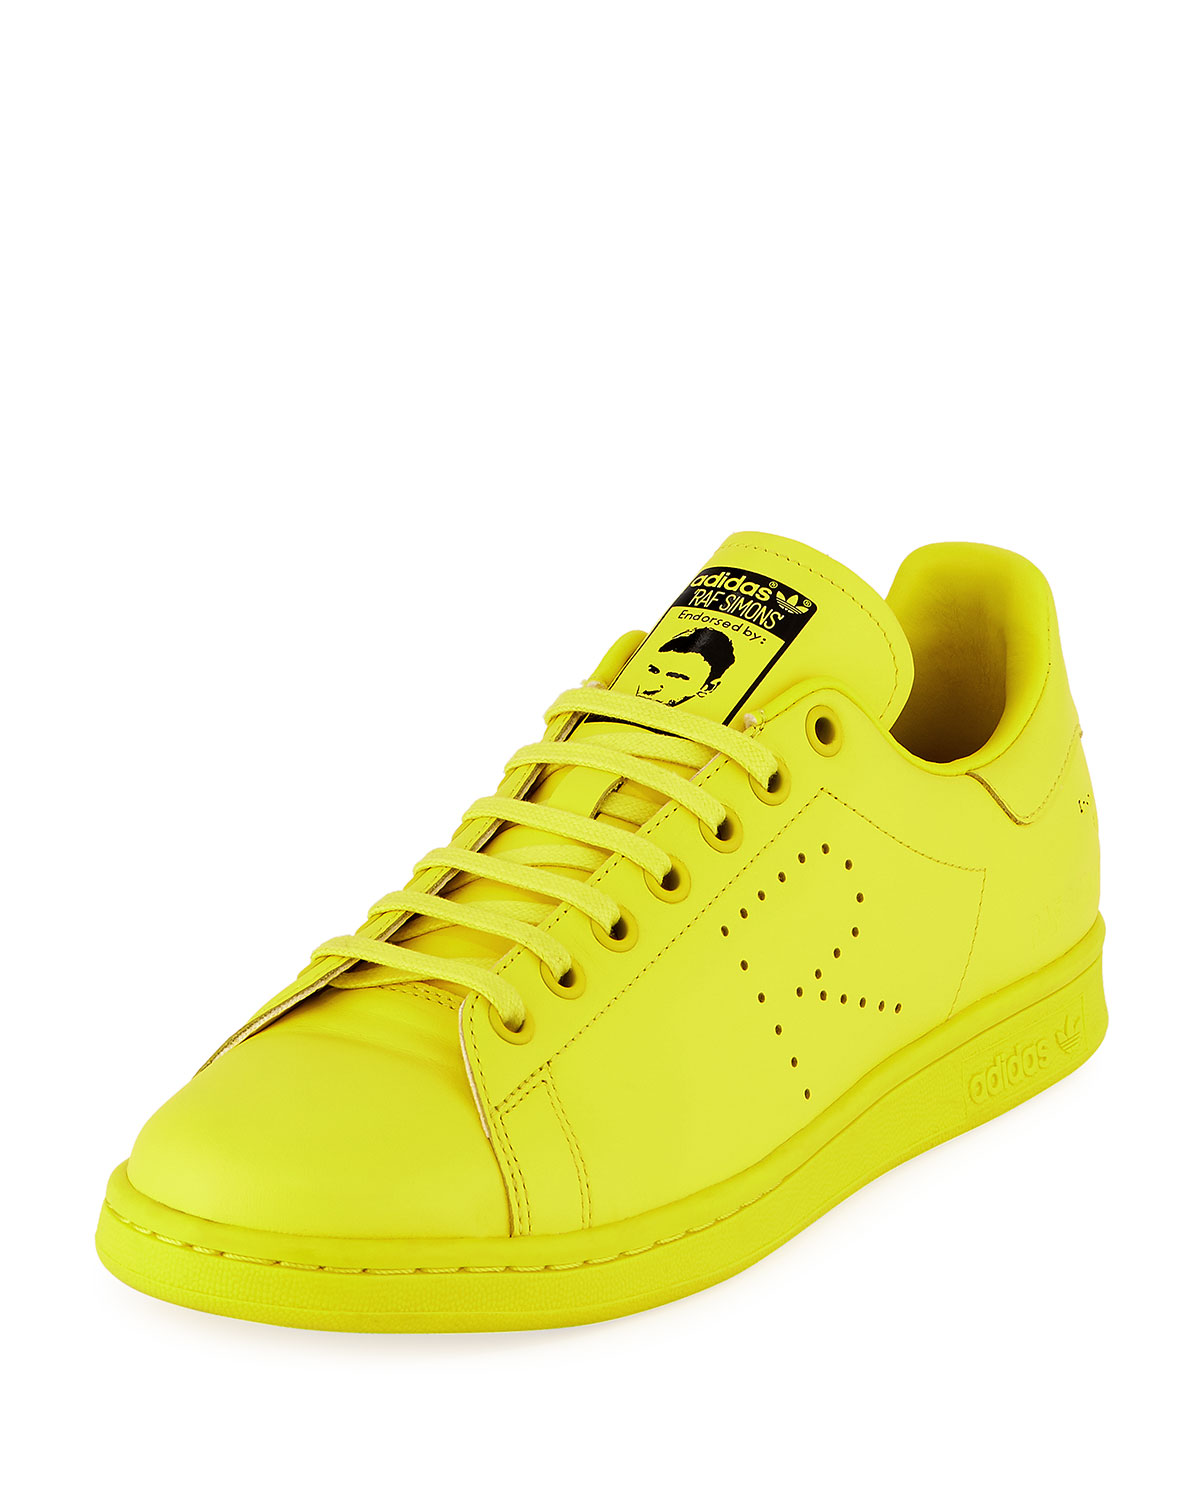 204a8eacf64dcf adidas by Raf Simons Men s Stan Smith Leather Low-Top Sneakers ...